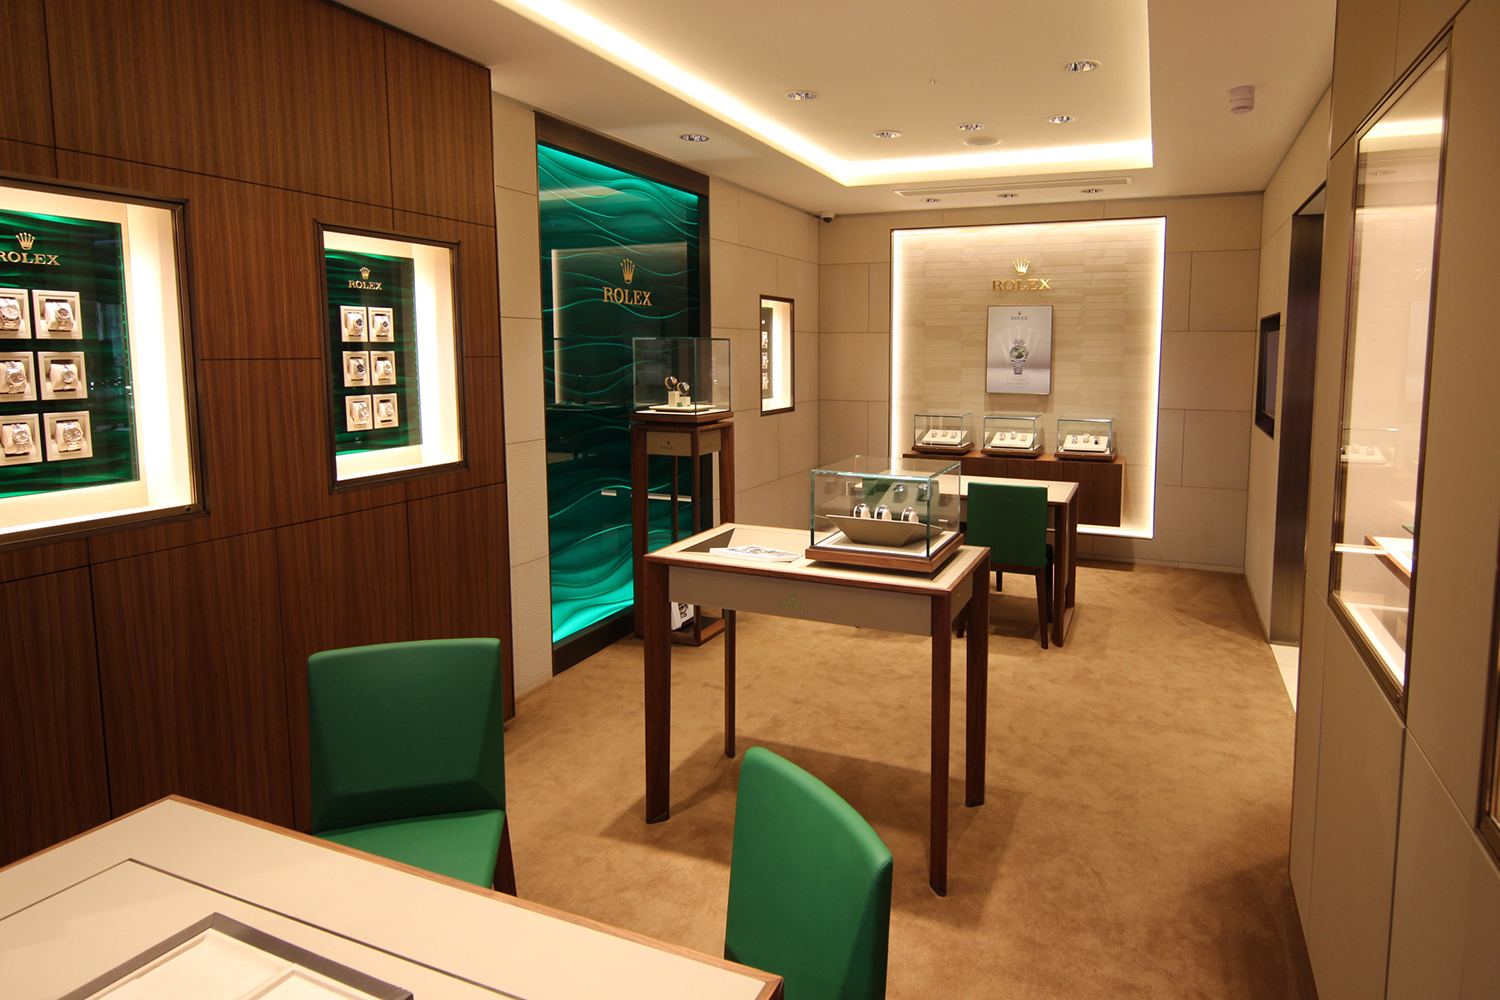 The Rolex Room